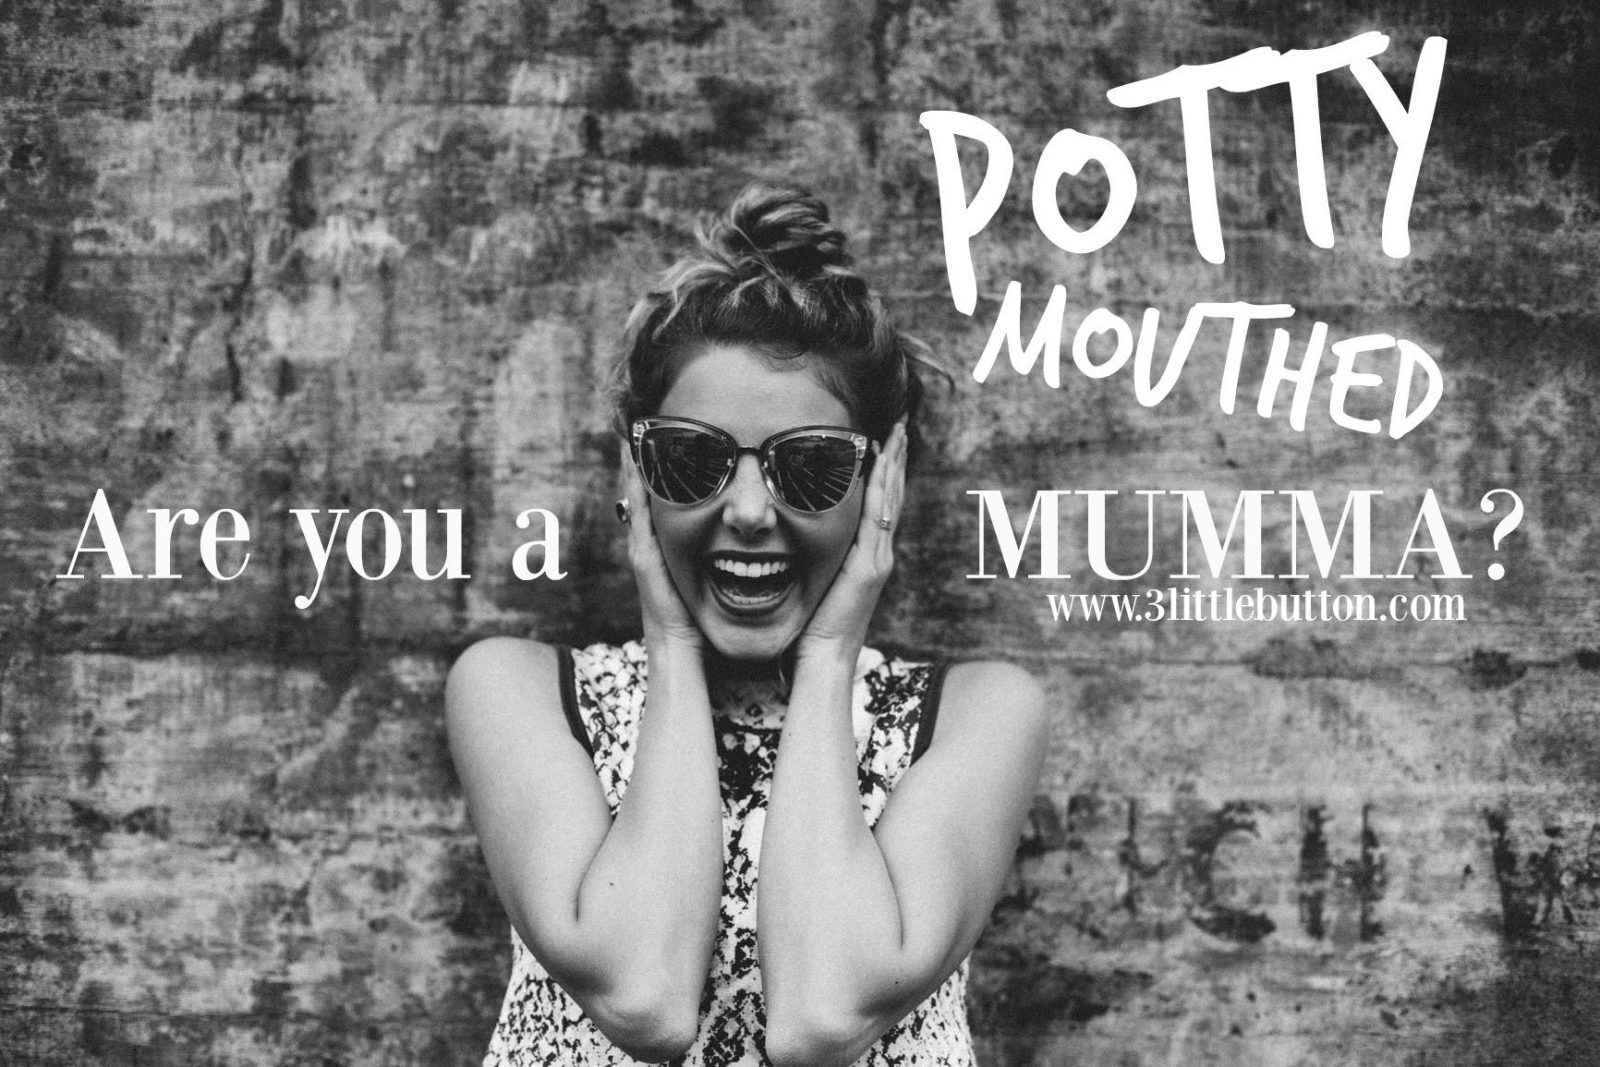 Are you a potty mouthed mumma - graphic